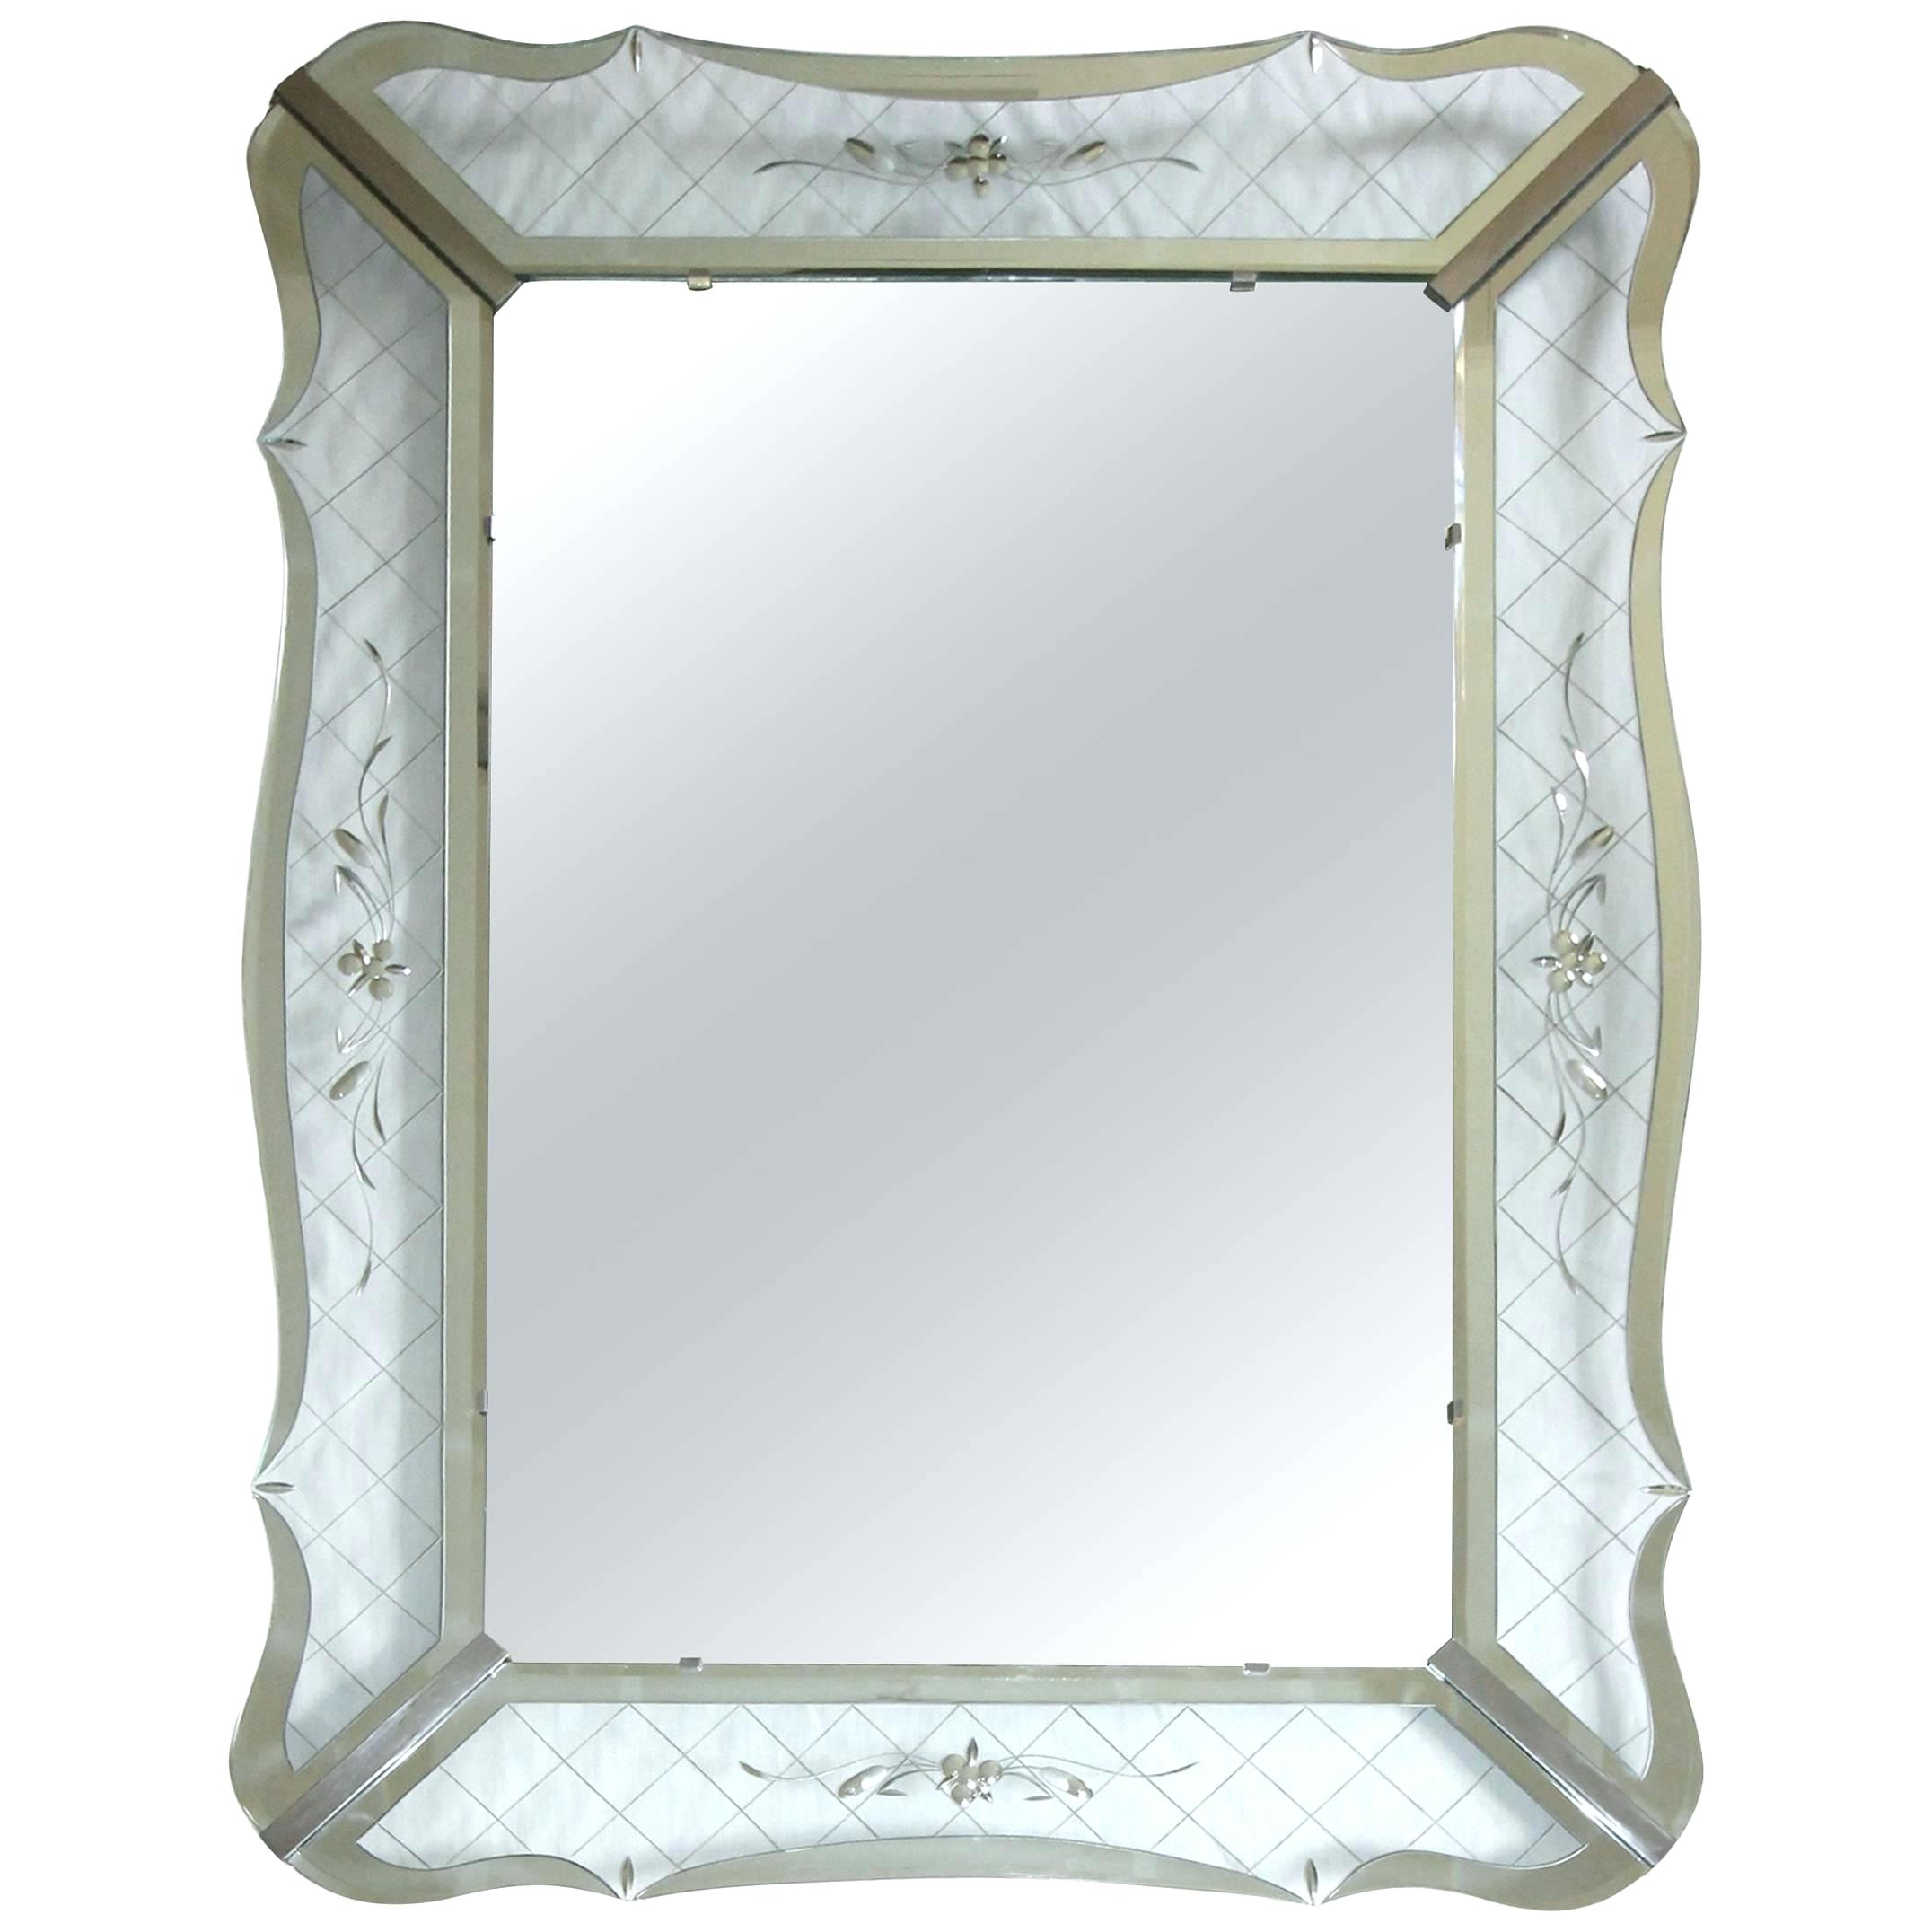 Decorative Etched Wall Mirrors With Regard To Famous Mirrored Edge Wall Mirror Large Wavy Clear Etched For Sale At (View 6 of 20)